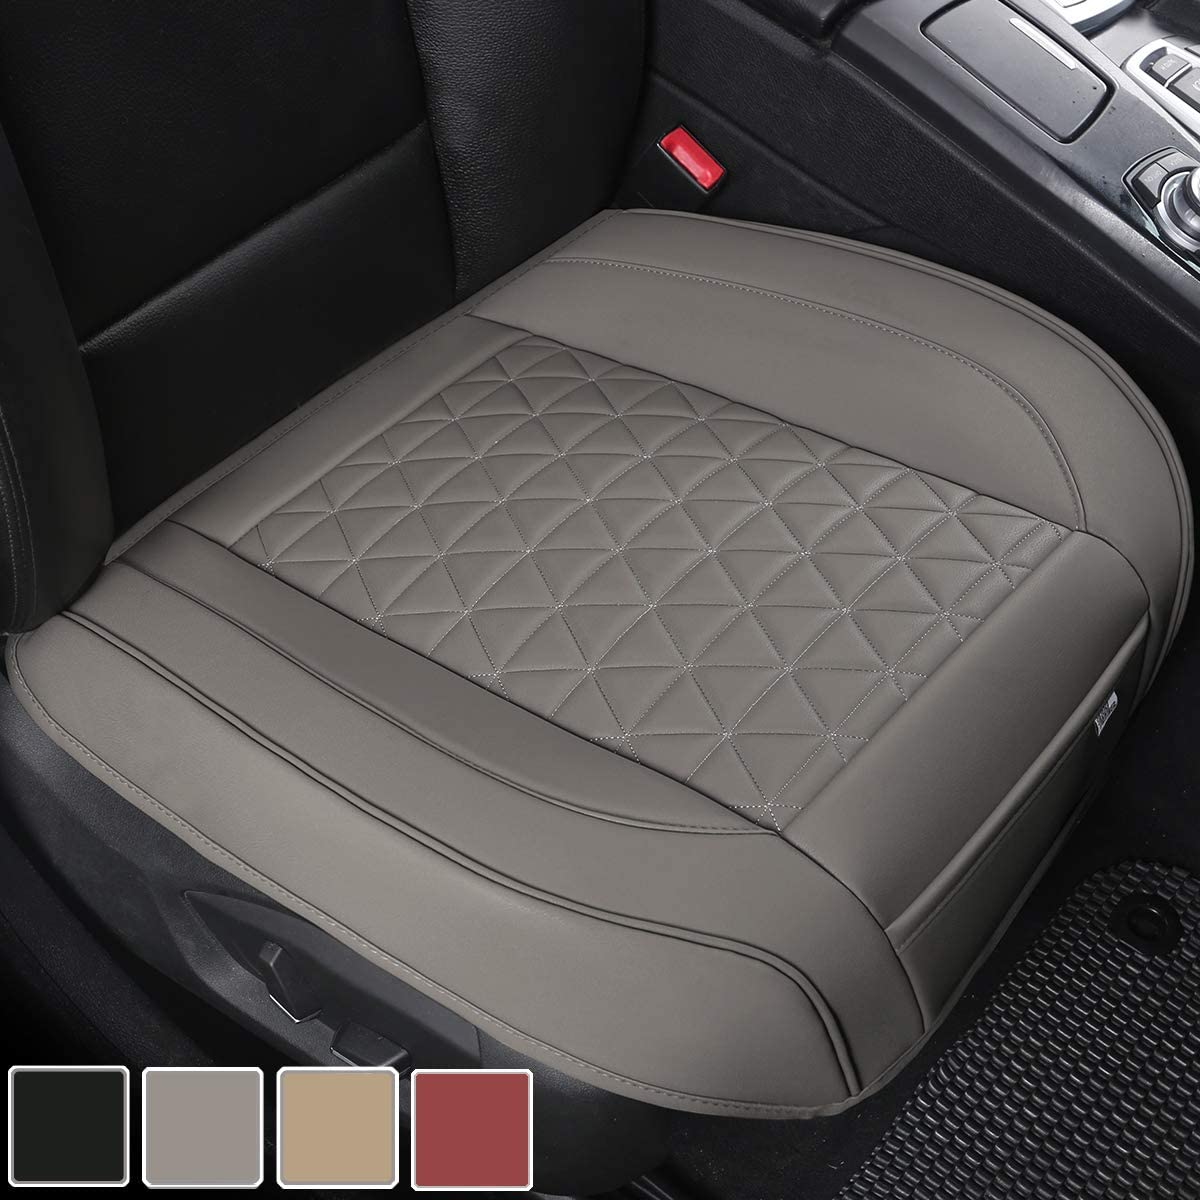 Black Edge Wrapping 1 Pair Luxury PU Leather Car Front Seat Cushions Bottom Protectors Pad for 90/% Vehicles Sedan SUV Truck Van MPV Big Ant Car Seat Covers